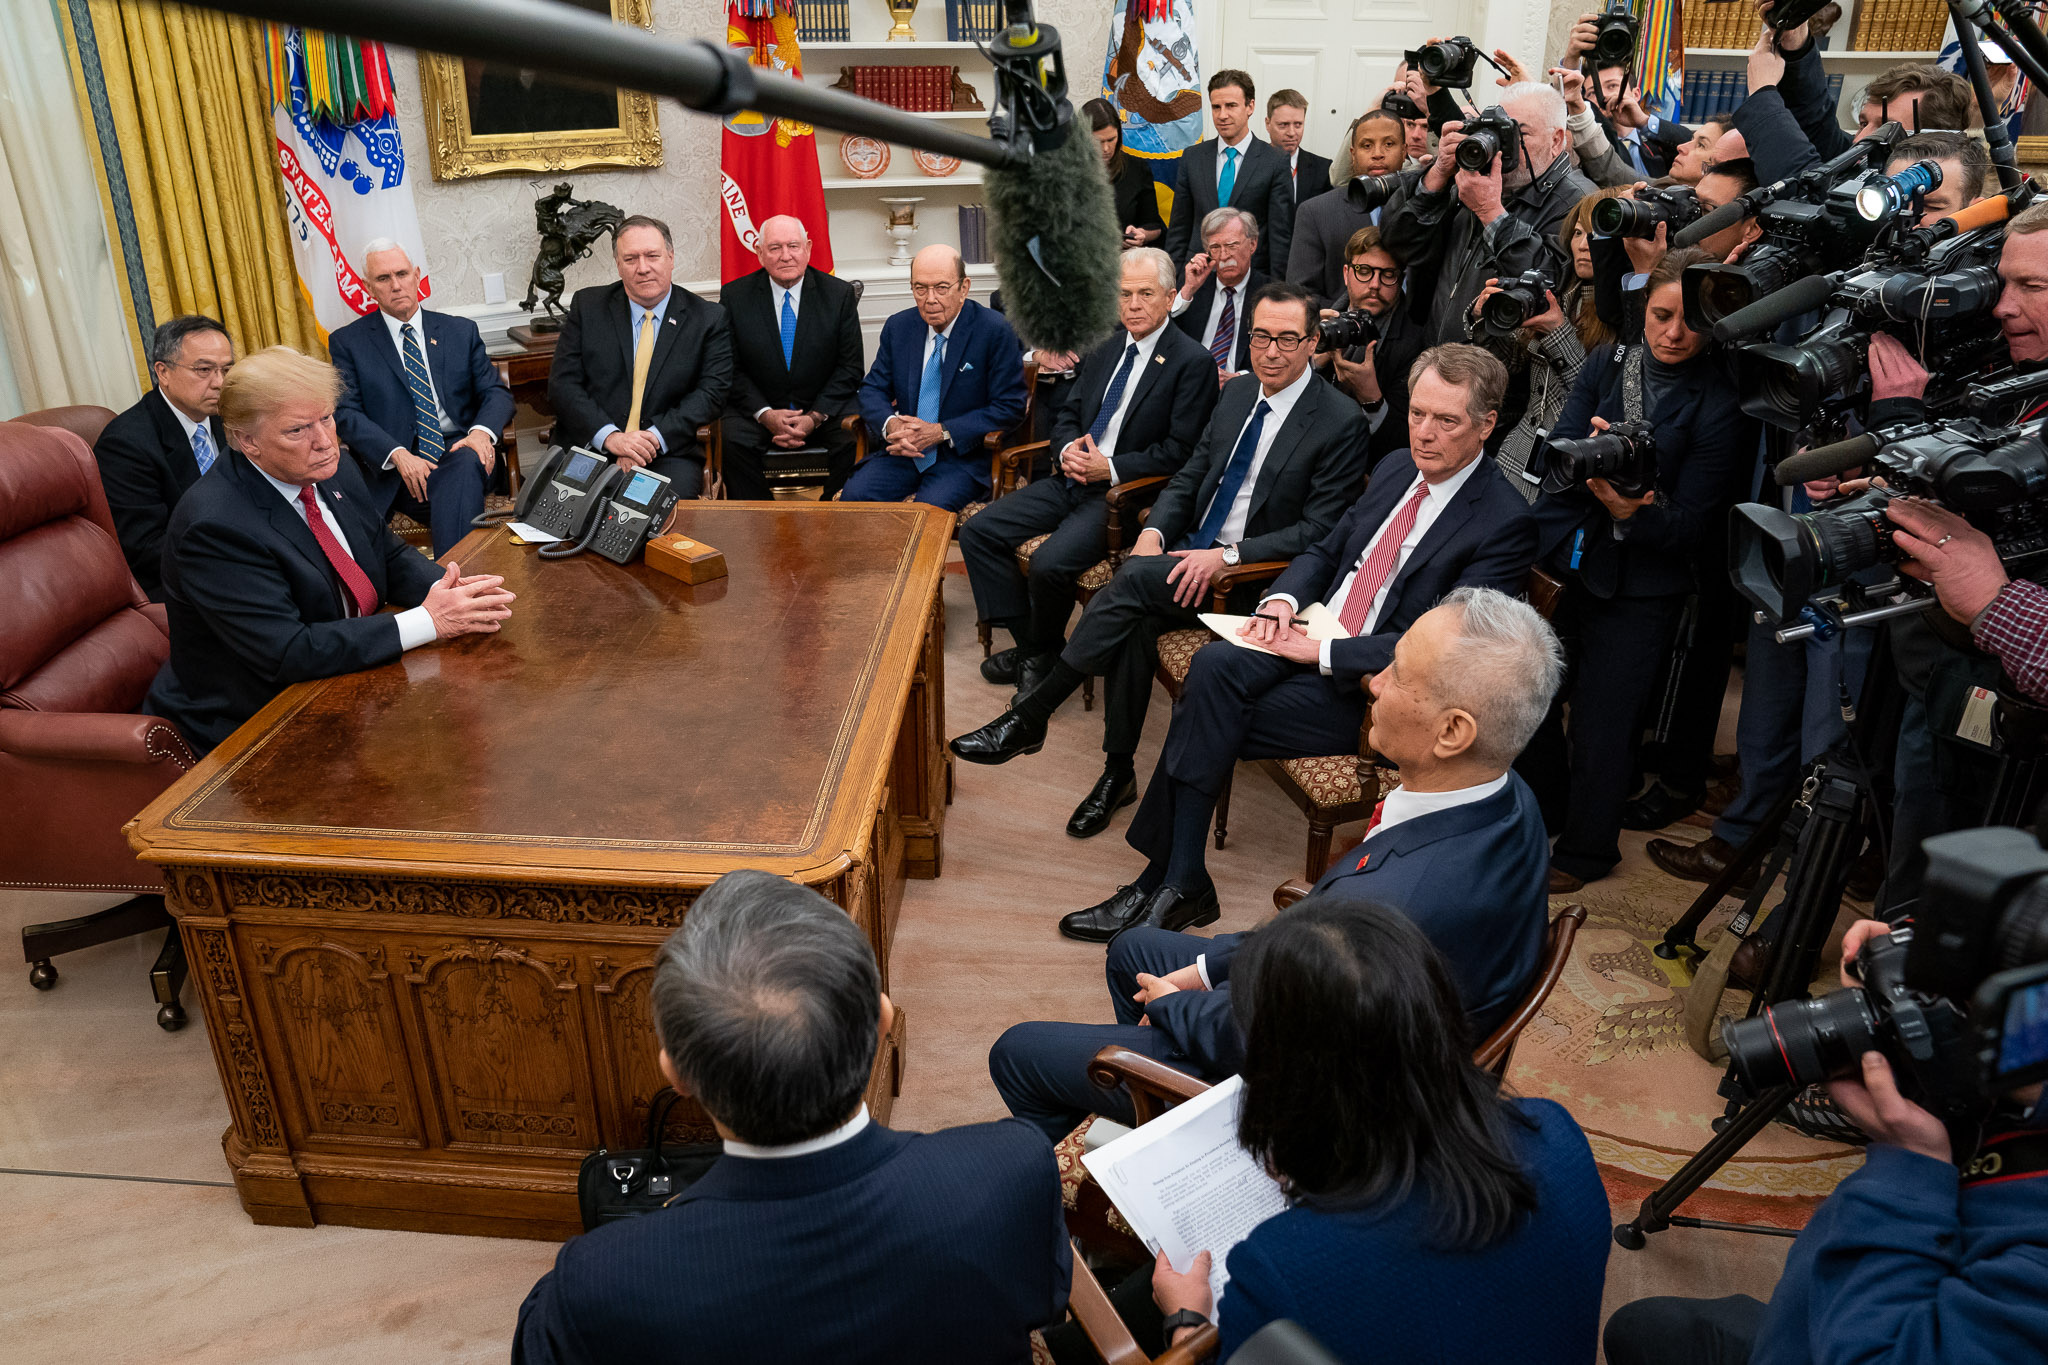 Trump, joined by other U.S. officials, receives Chinese Vice Premier Liu He in Oval Office, January 2019 (Official White House Photo by Tia Dufour via Flickr )